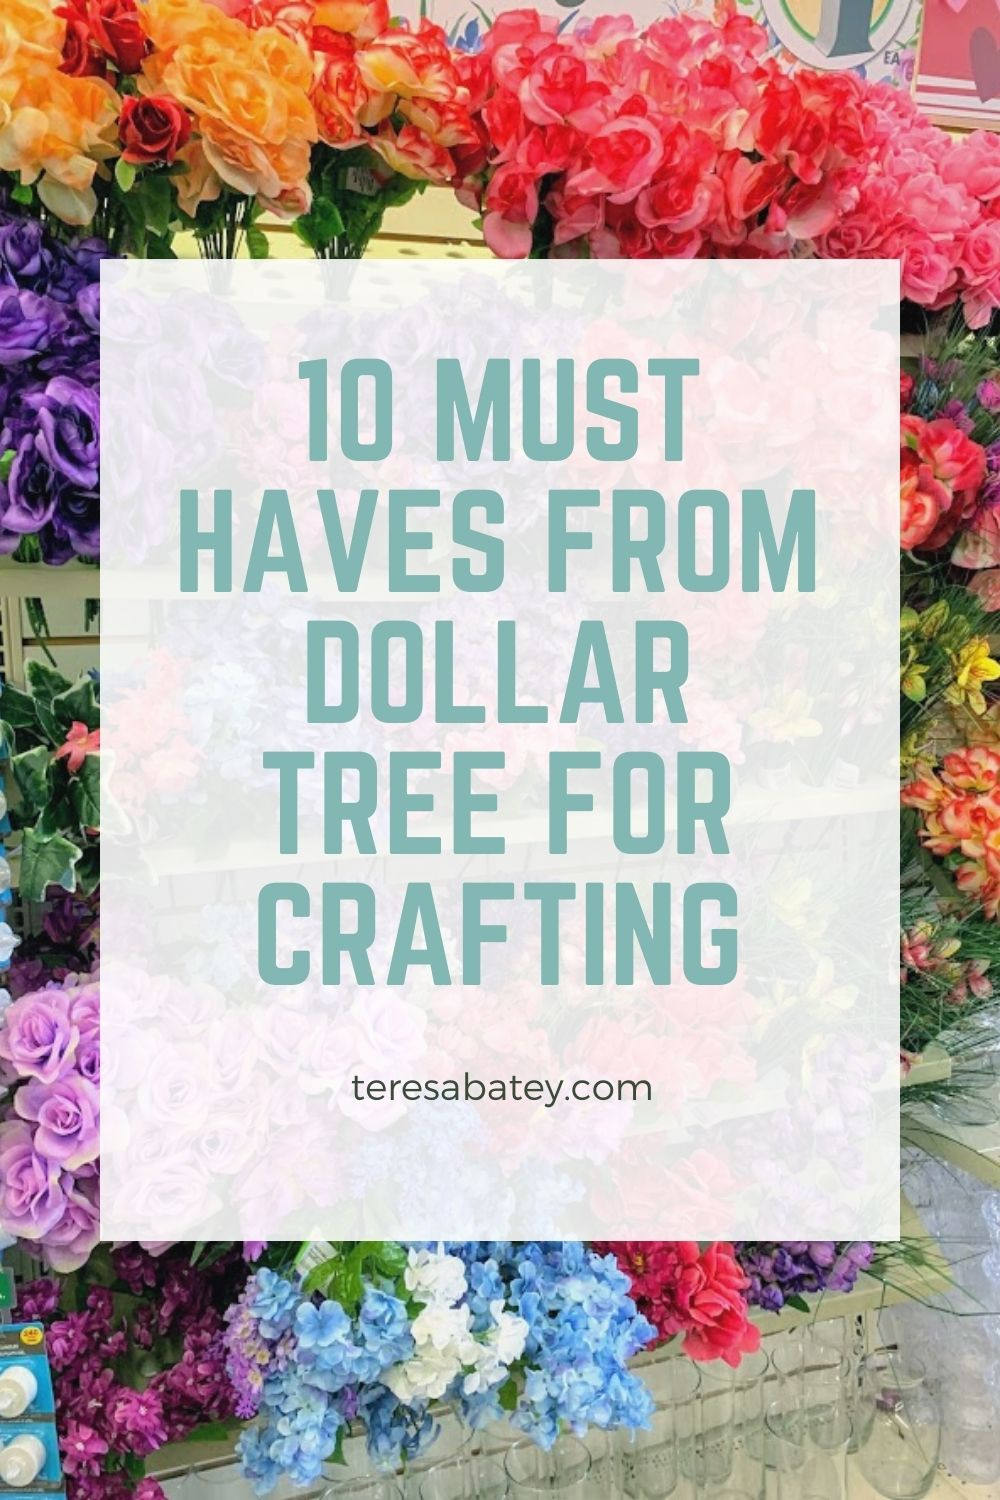 10 Must Haves From Dollar Tree For Crafting